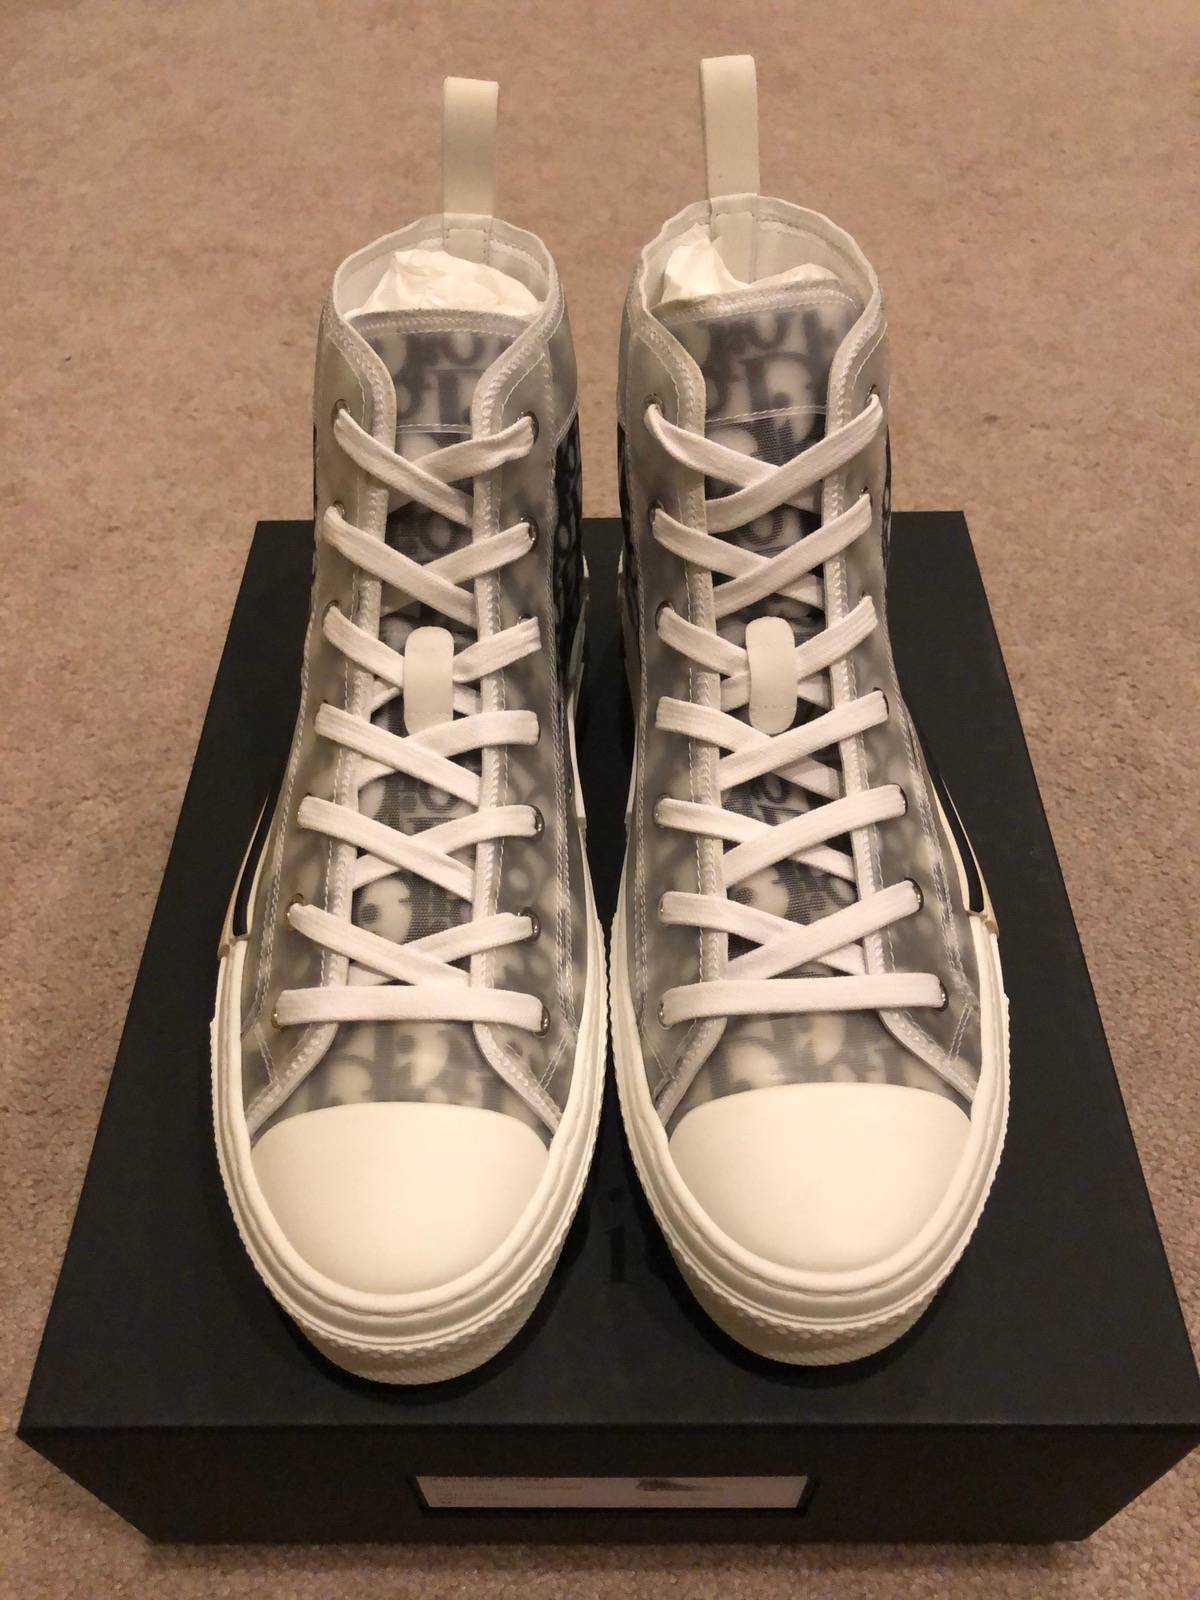 Dior Dior X Kim Jones B23 High-Top Oblique Sneaker Size 11 - Hi-Top  Sneakers for Sale - Grailed a2fa17ca8